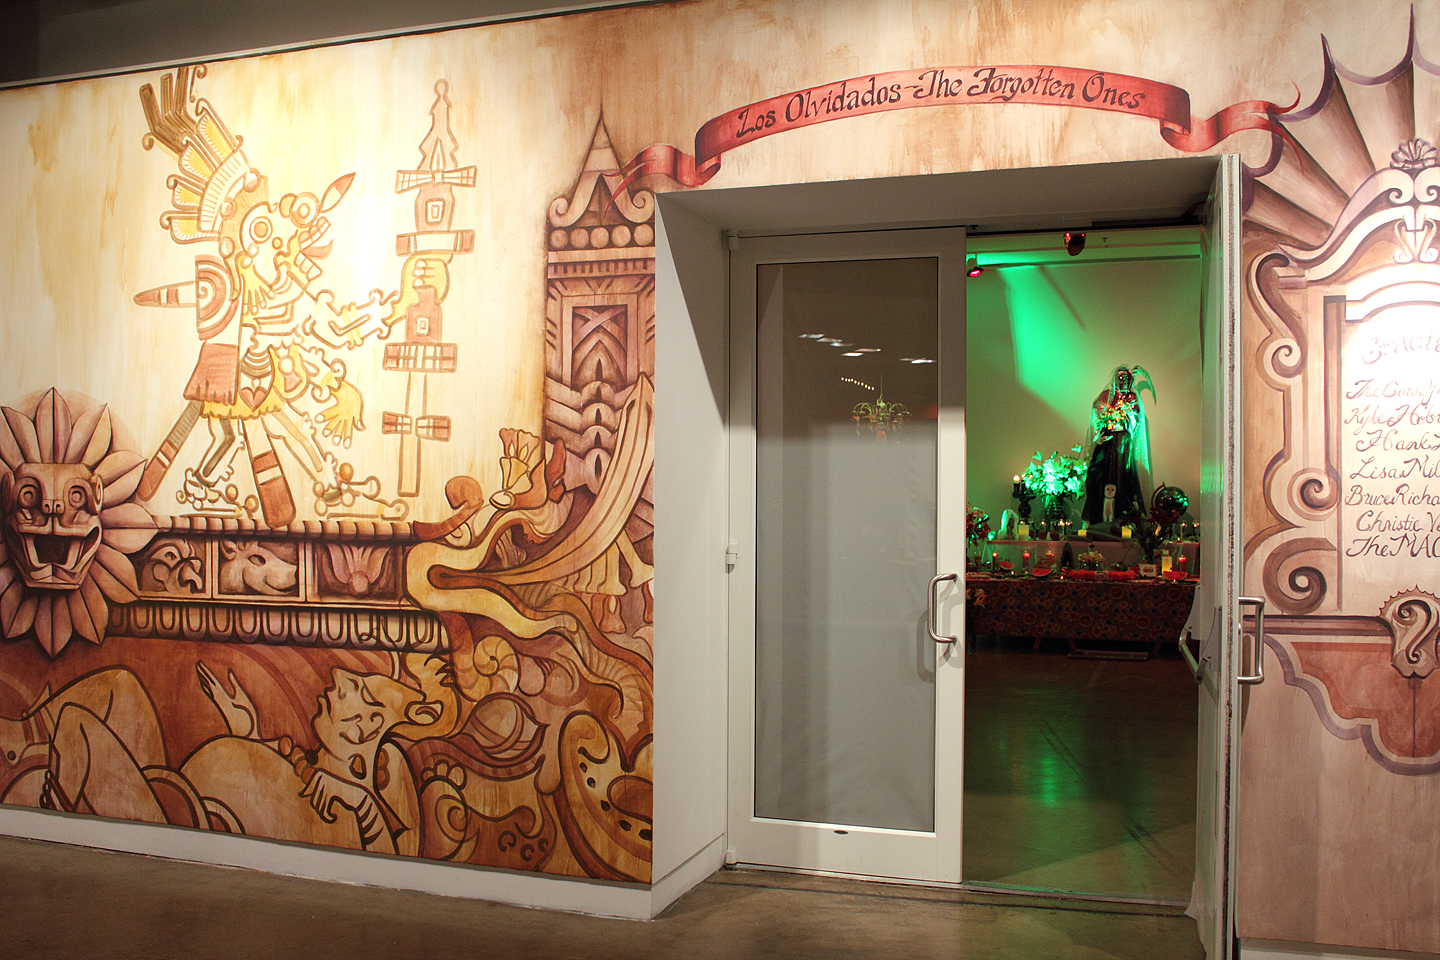 Above is the gallery entrance designed and painted by Dallas artist Kyle Hobratschk.